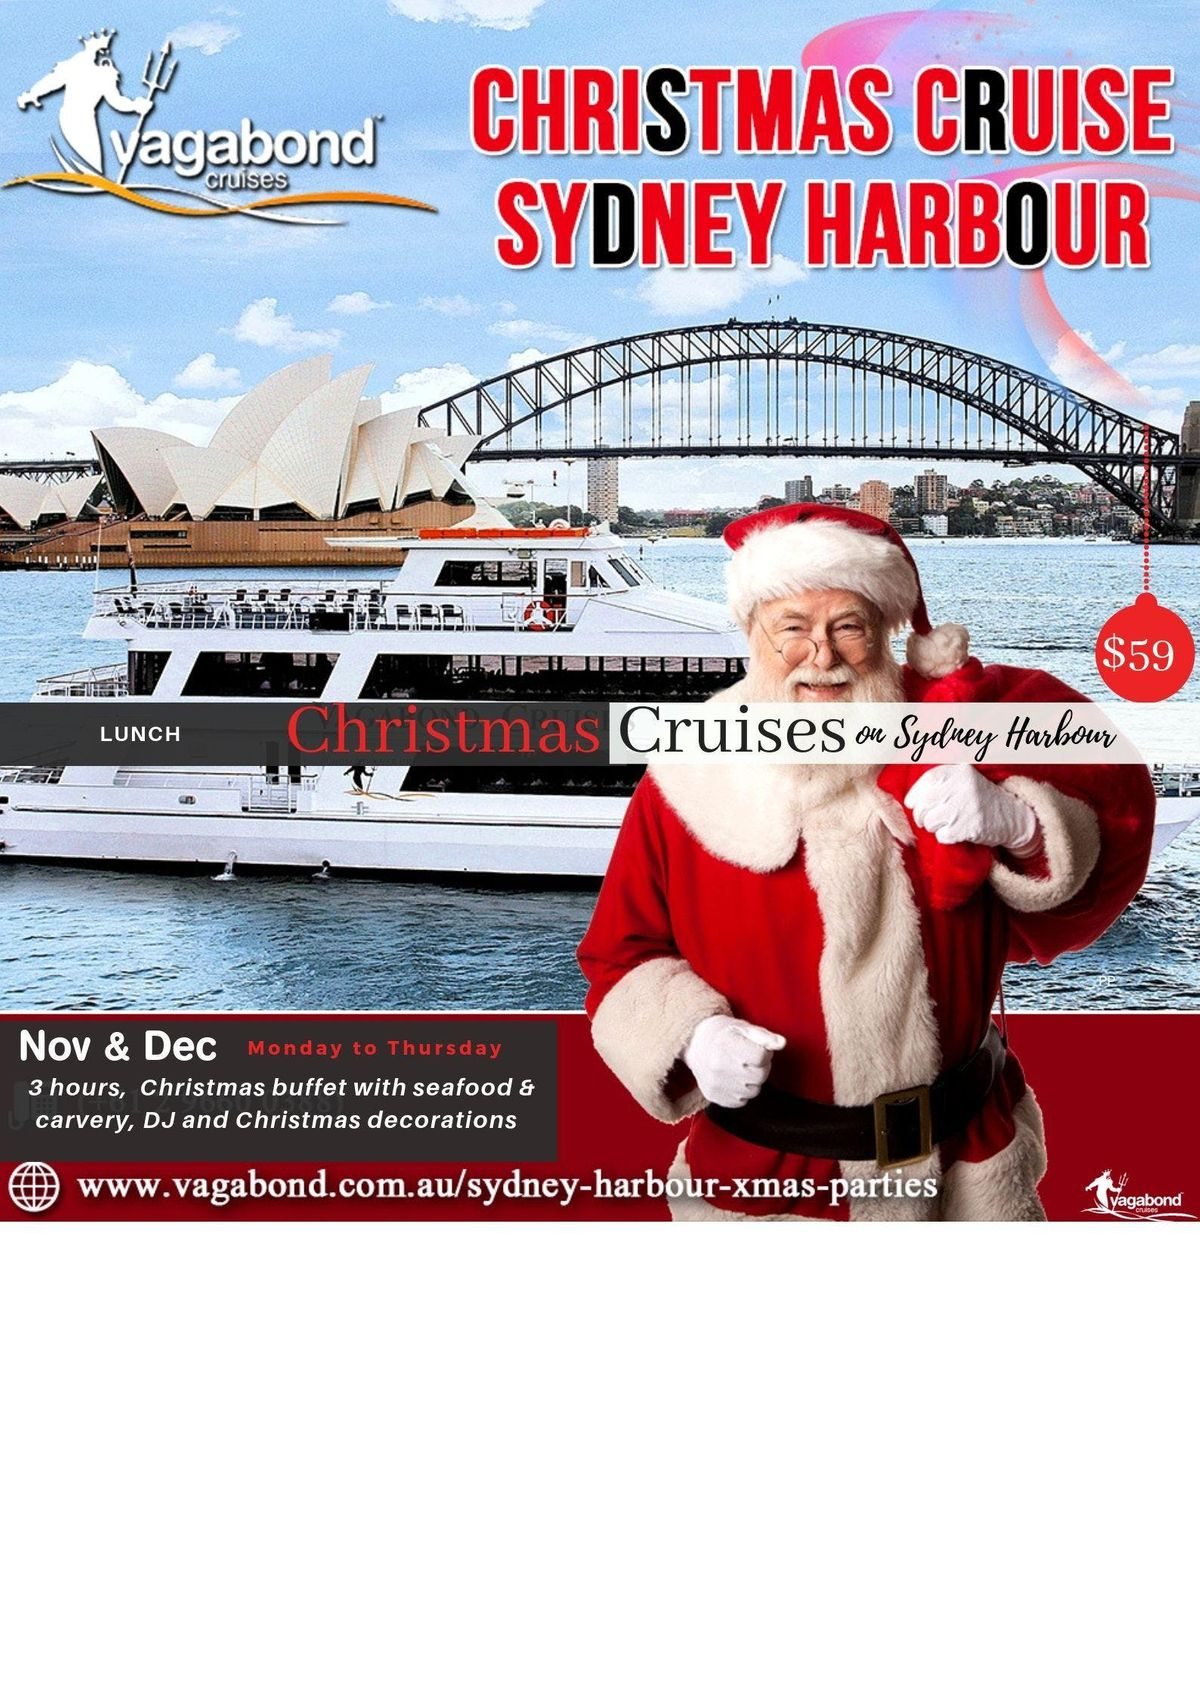 Christmas Party Lunch Cruises on Sydney Harbour on NOV & DEC